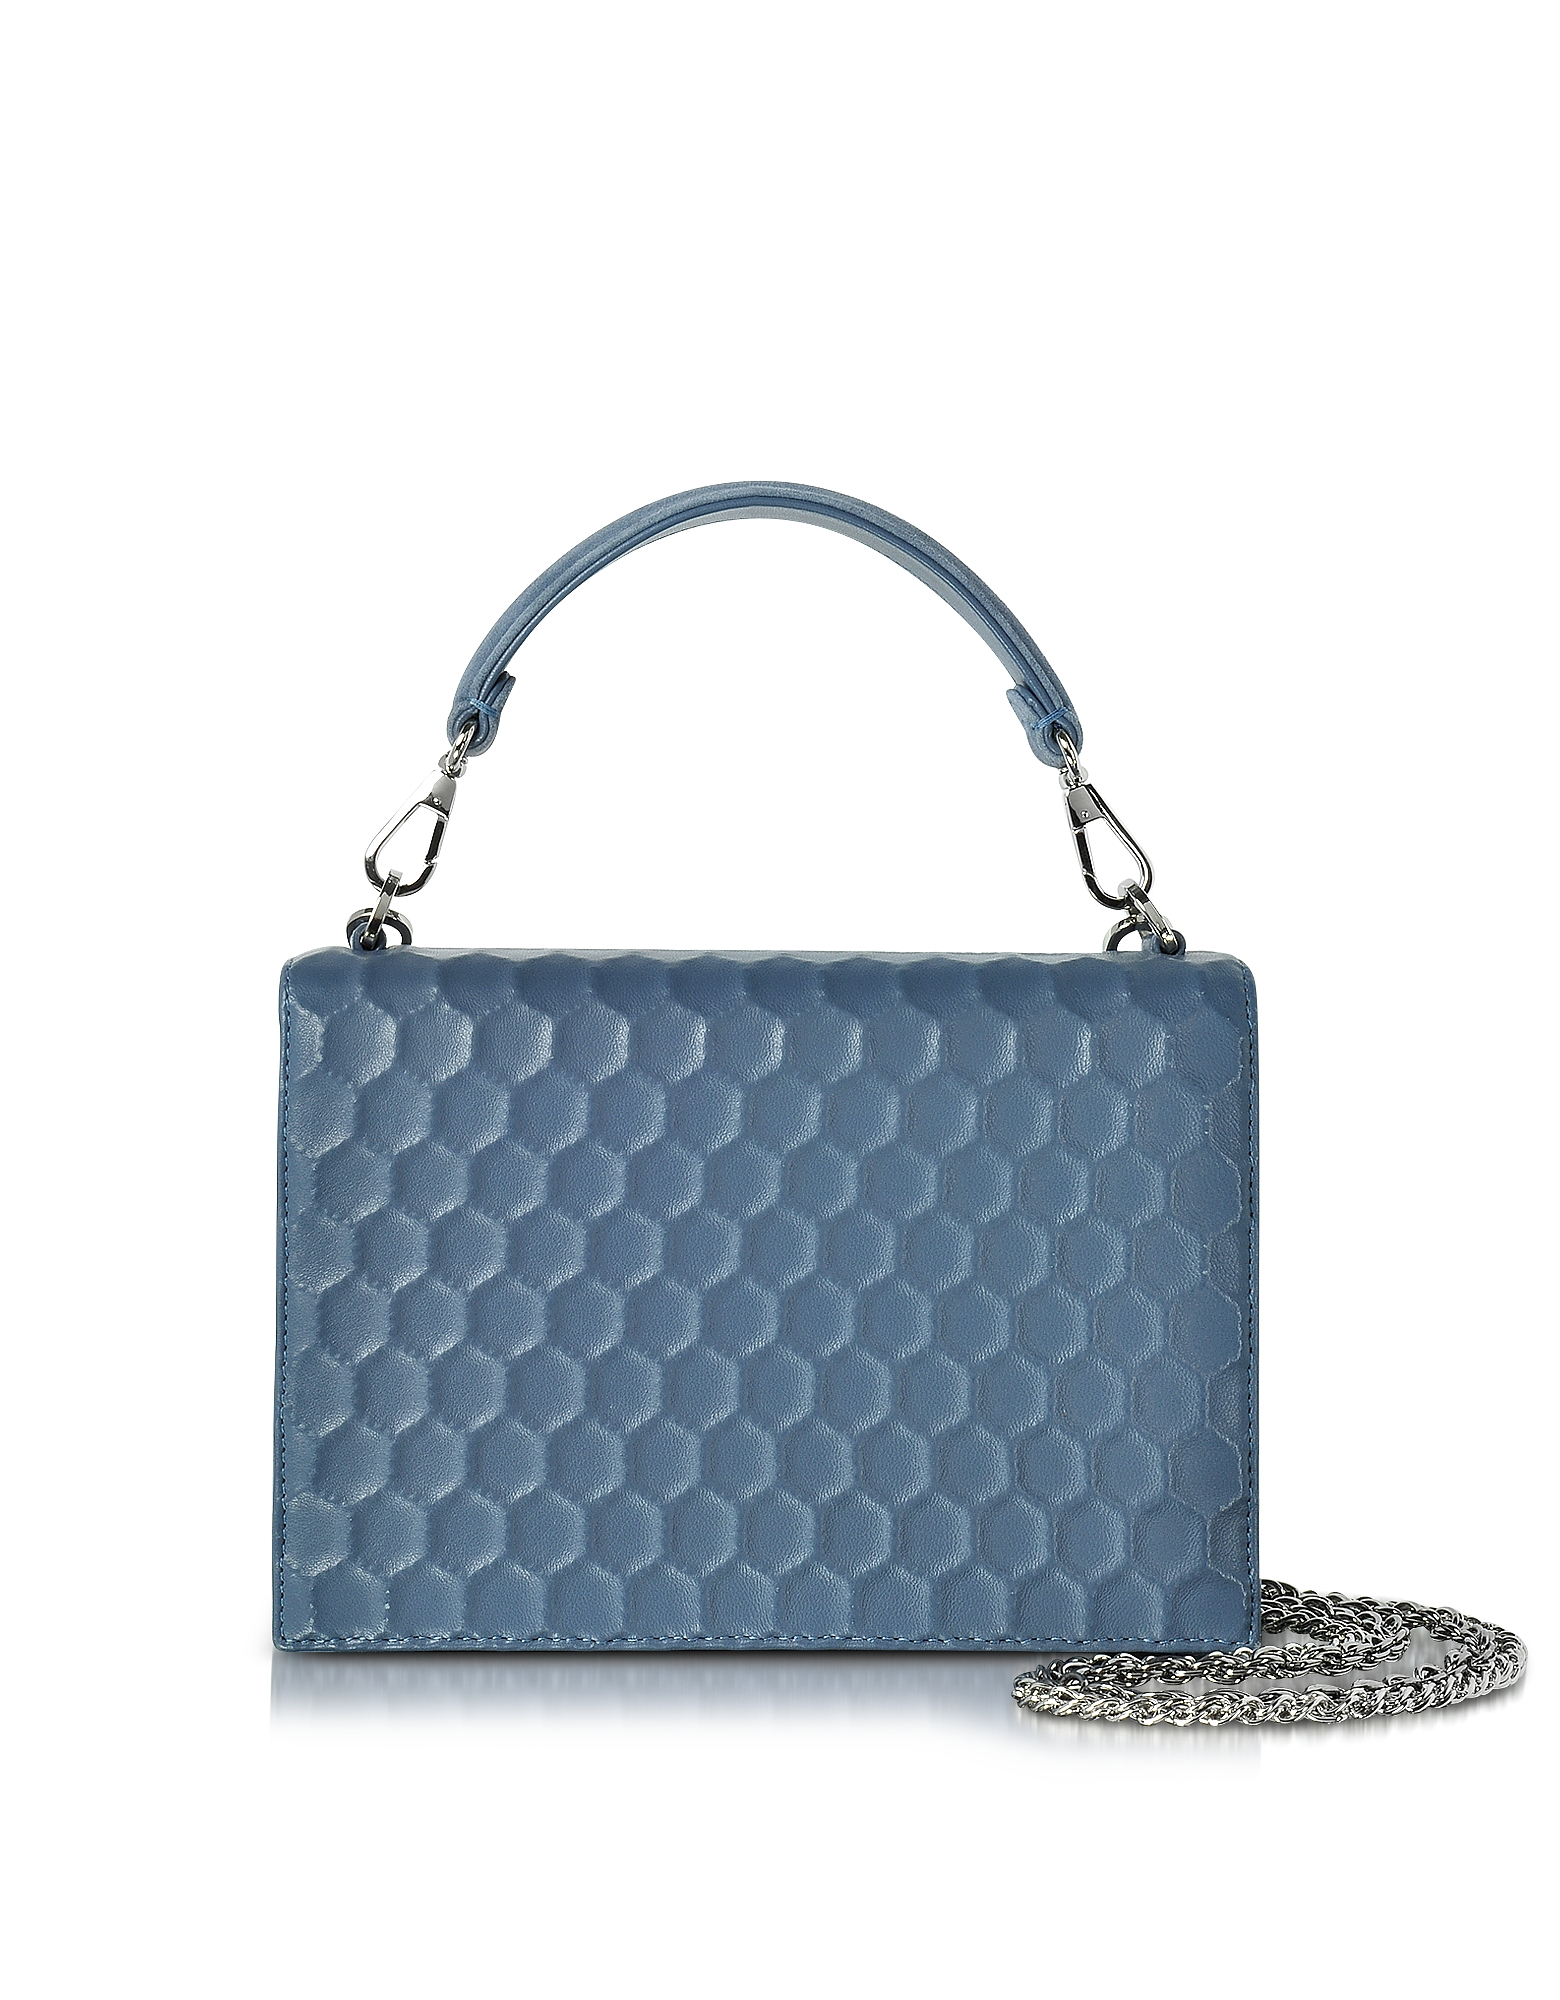 Rodo Handbags, Blue Nappa on Mesh Celebration Clutch w/Top Handle